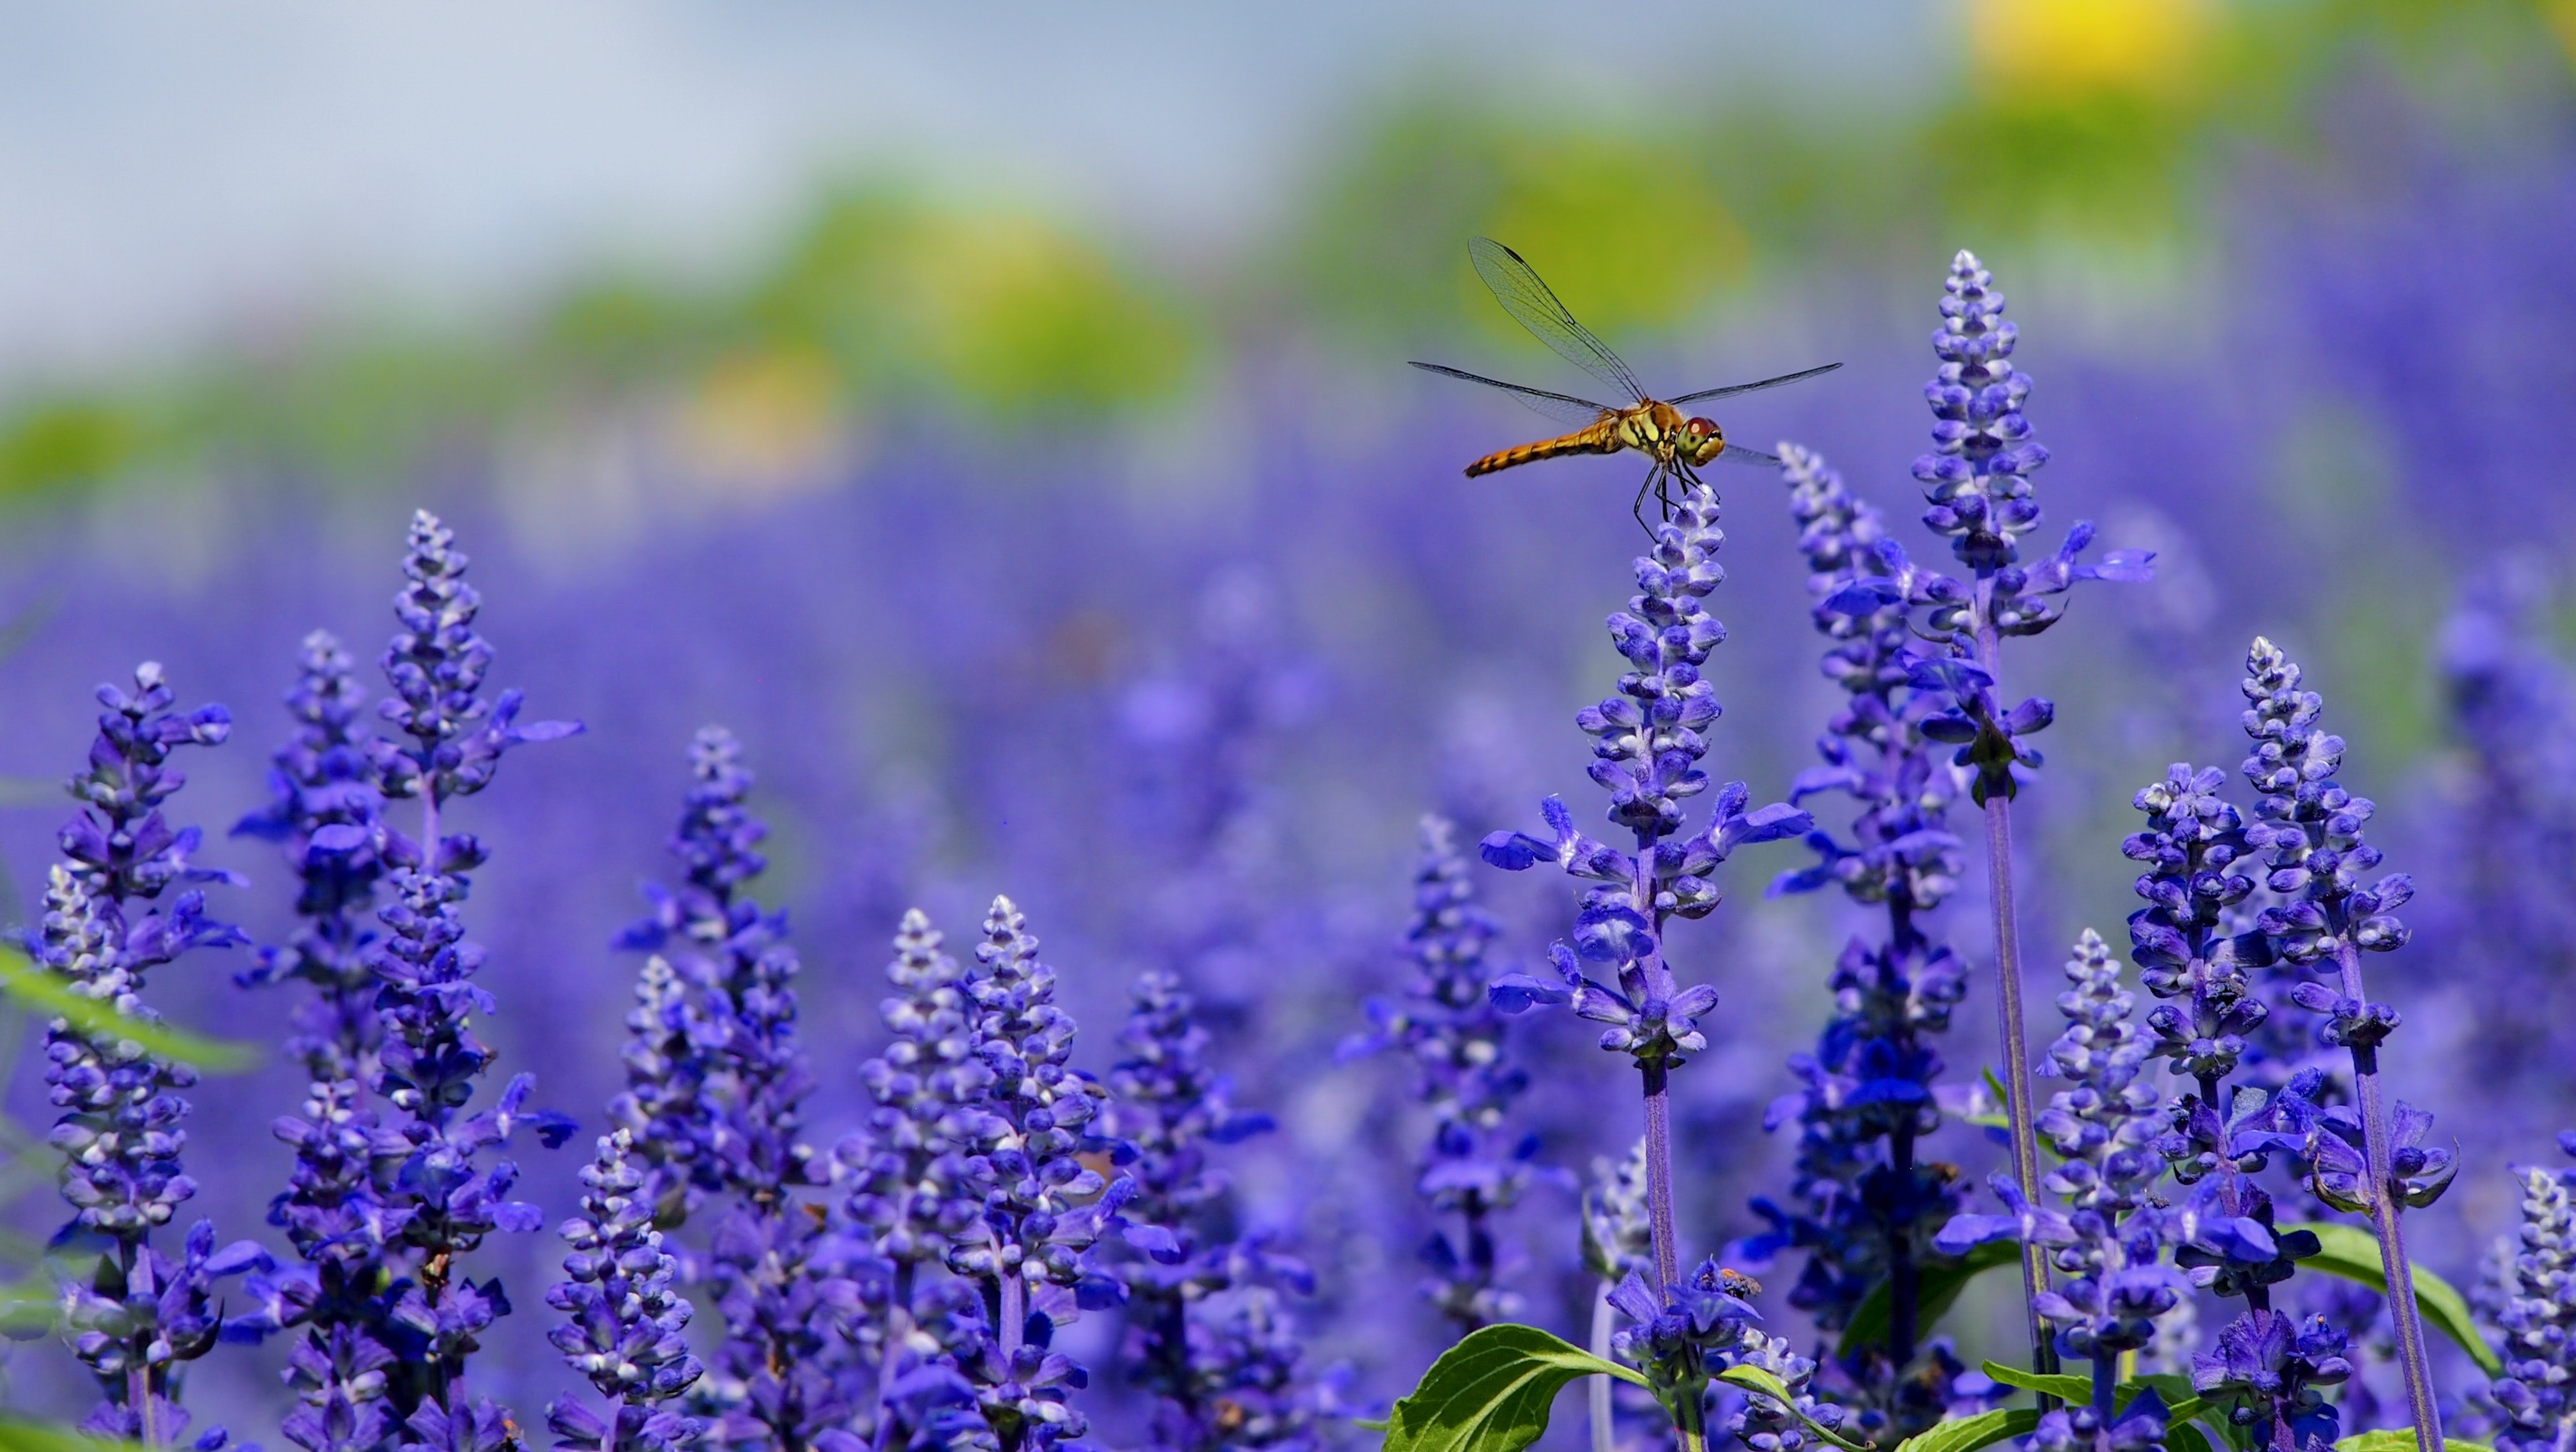 orange dragonfly perched on purple flower